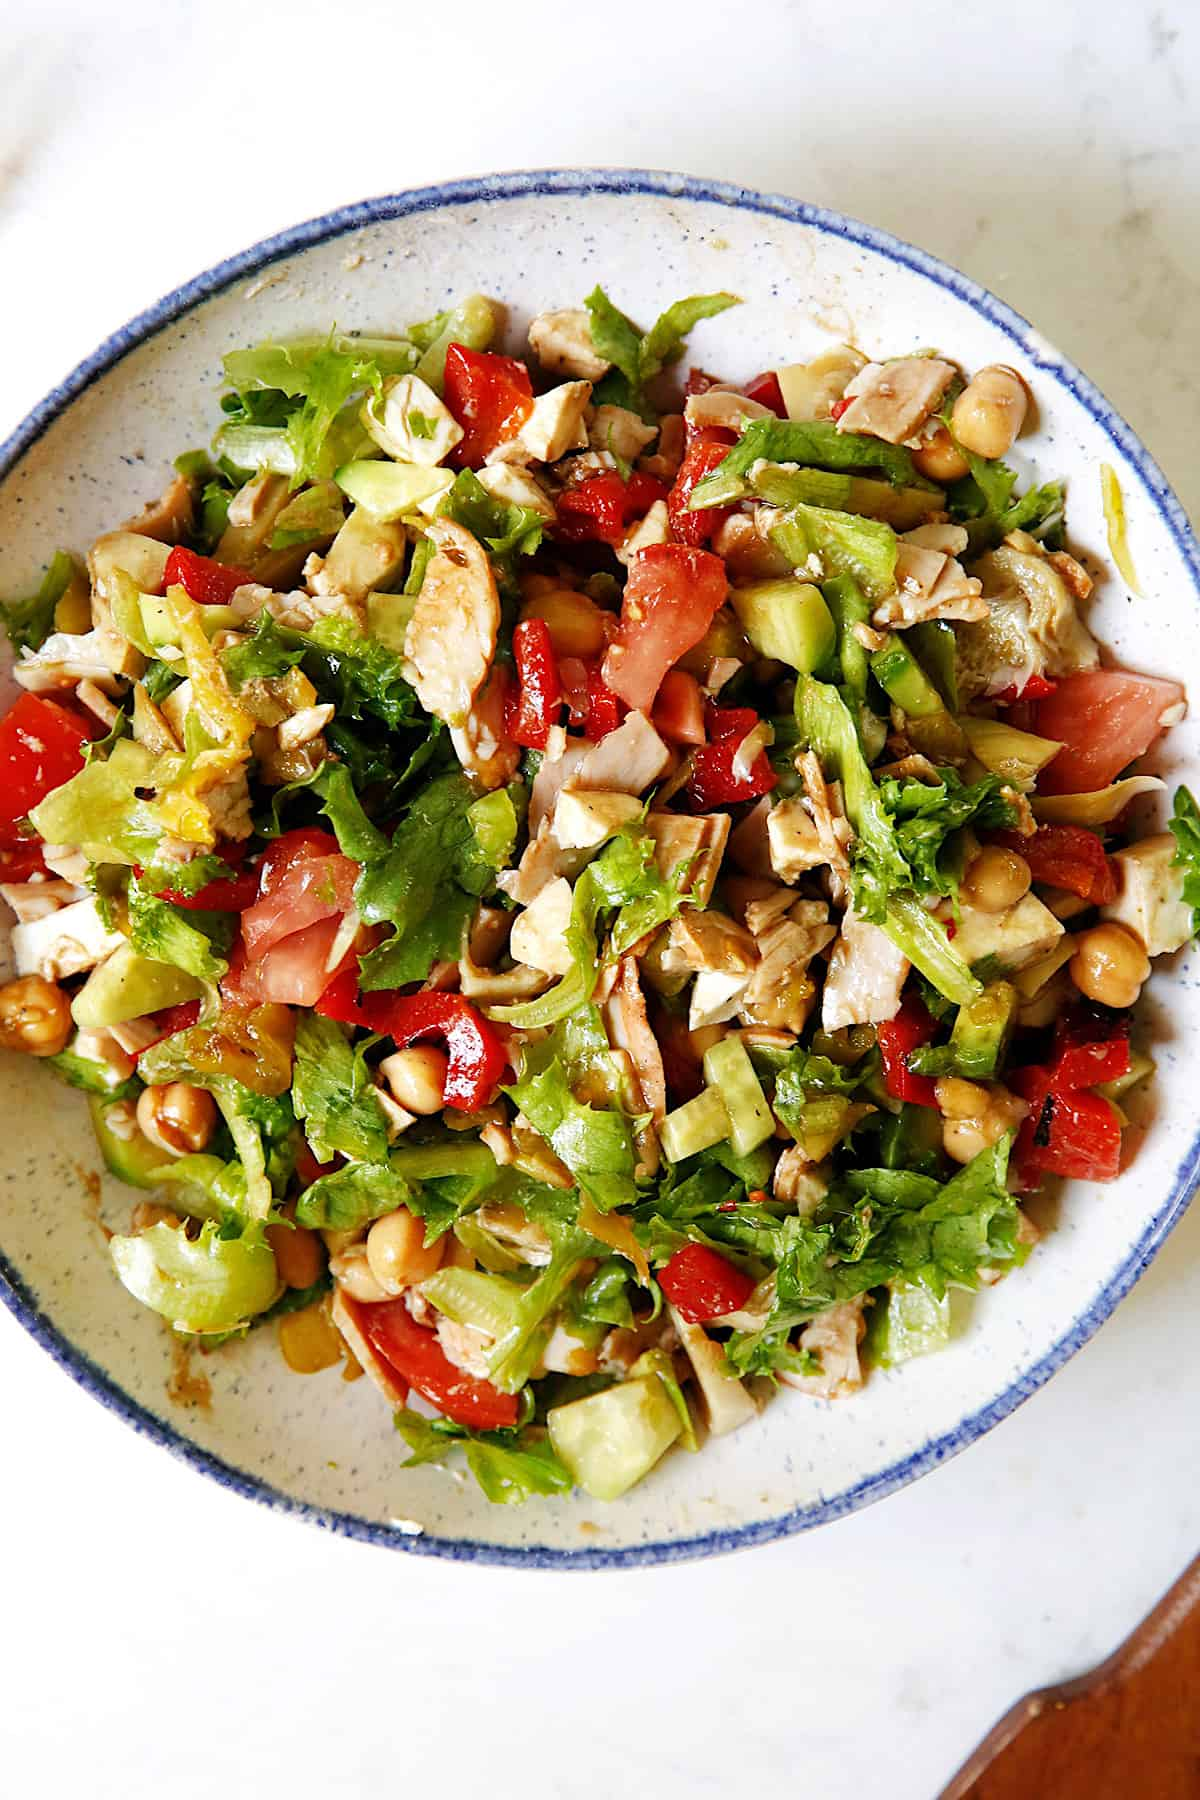 chopped salad tossed ready to eat